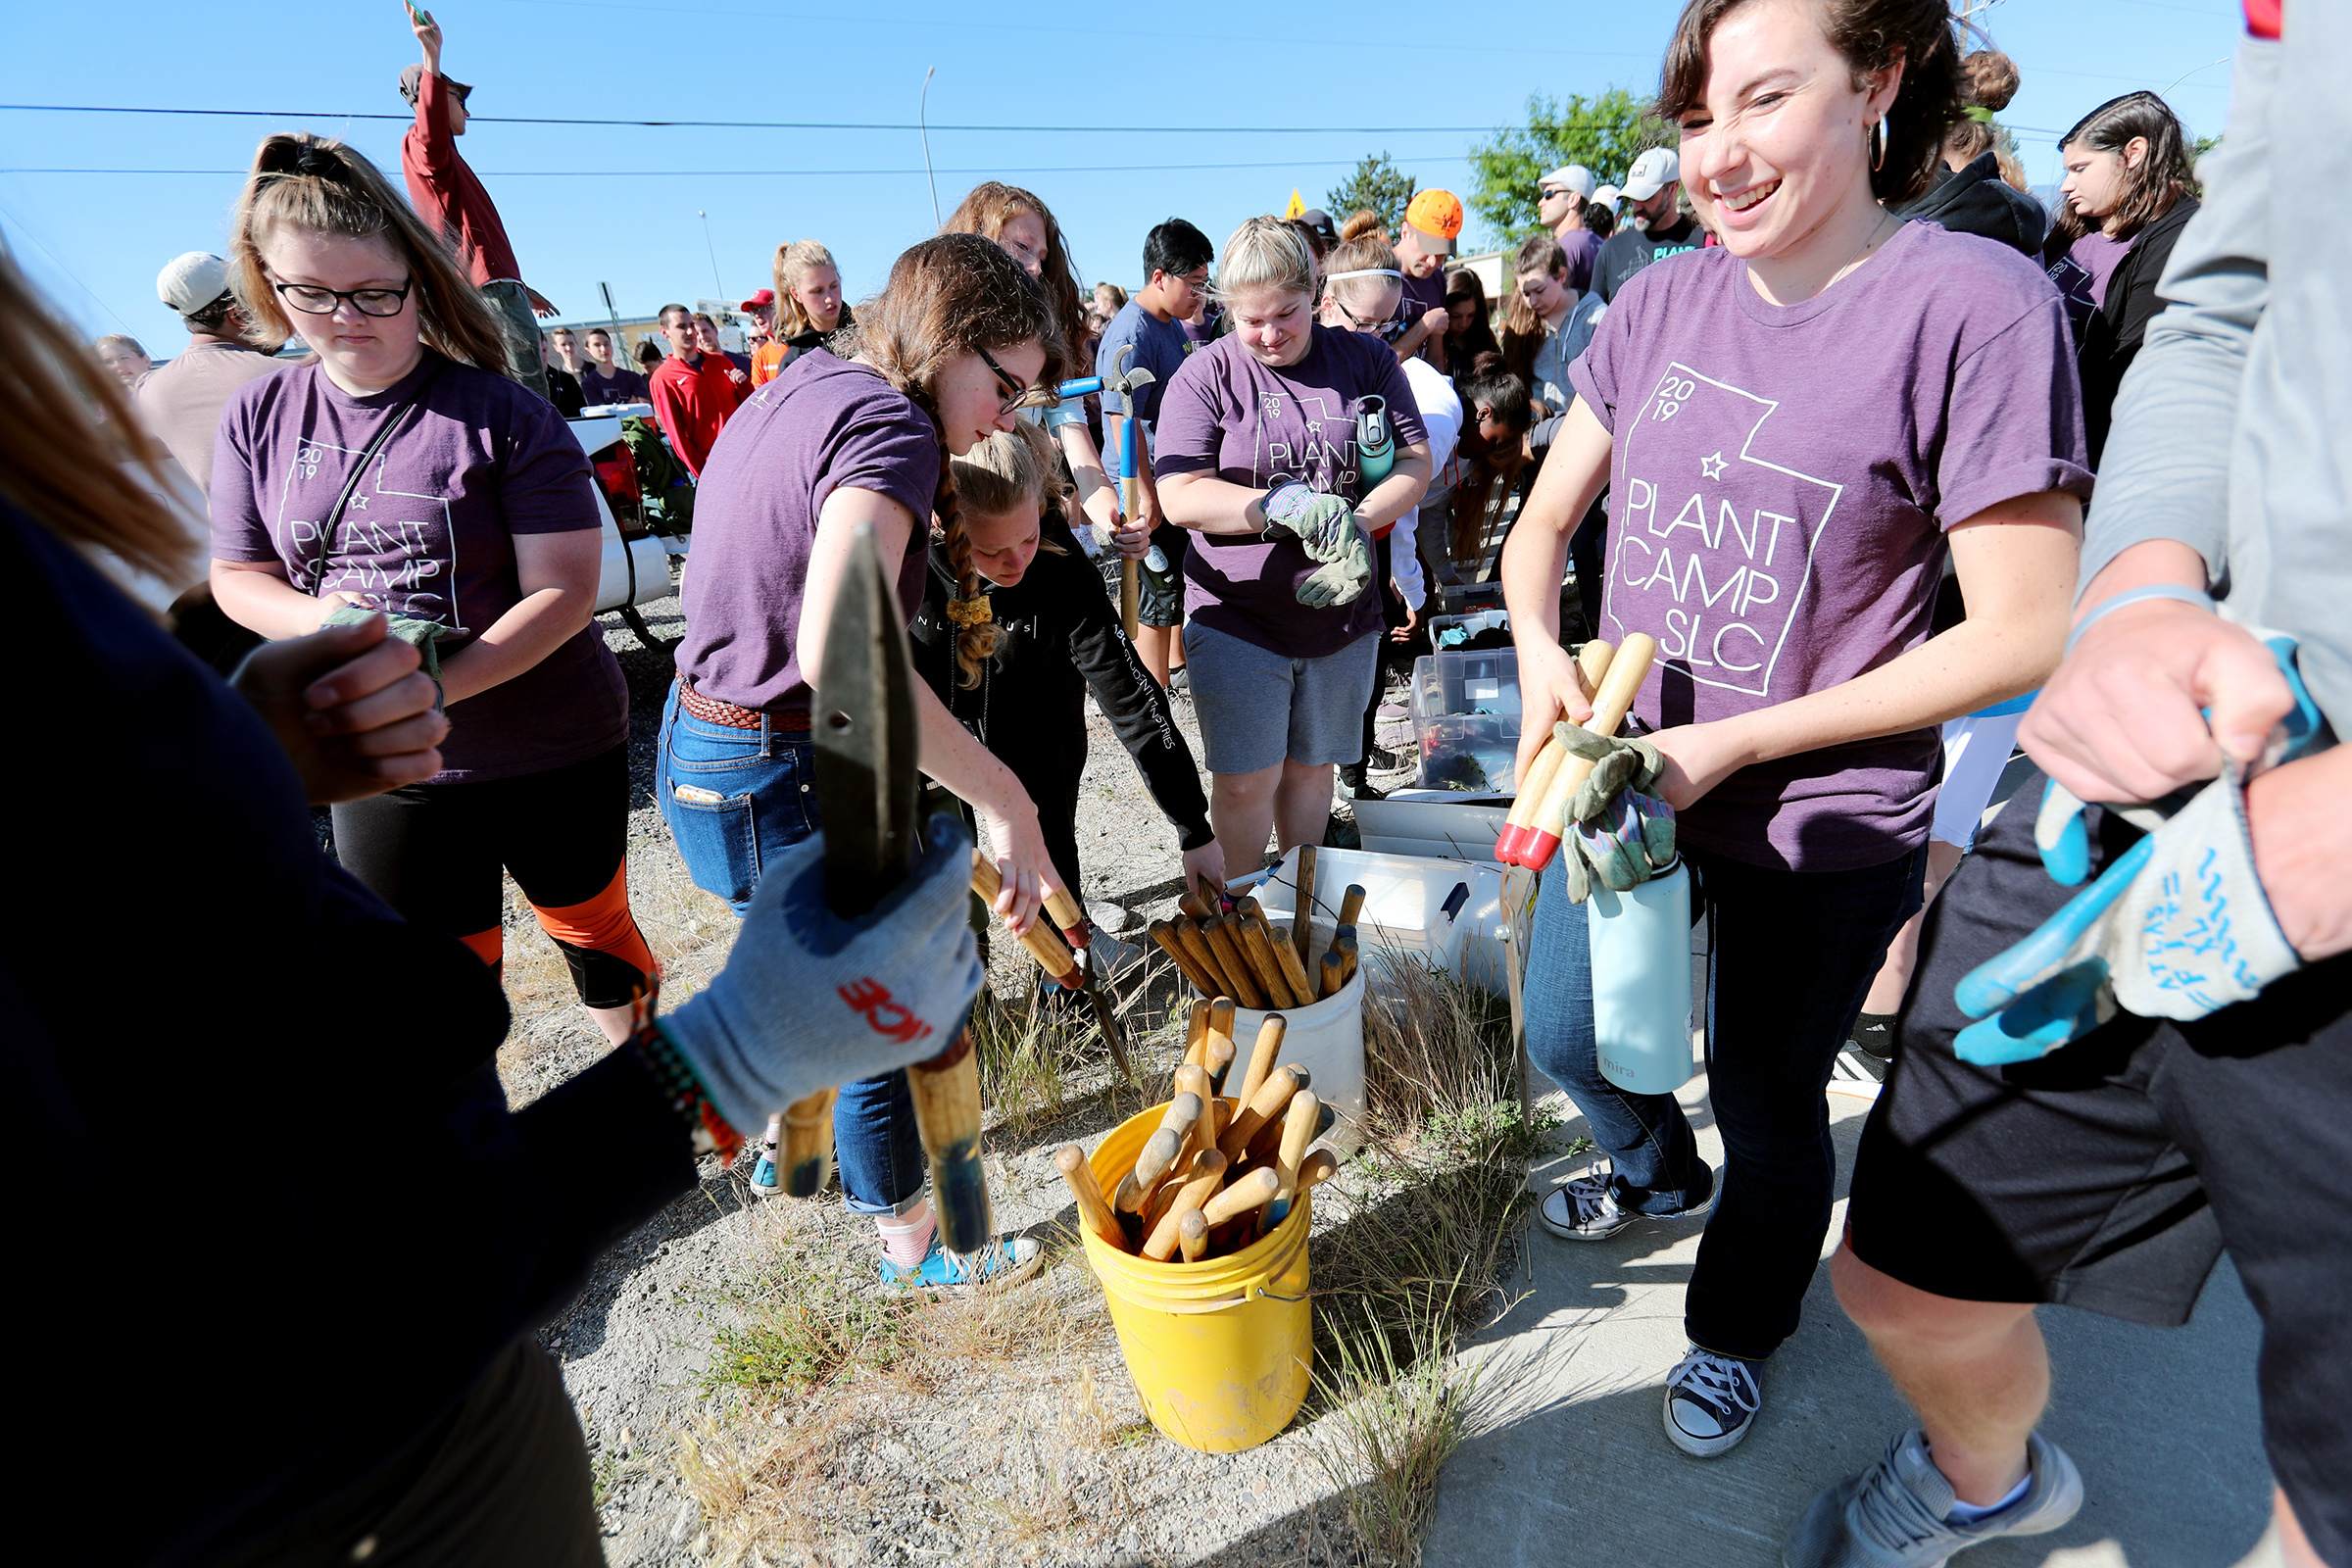 Youth from across the country pick up tools for a weed-pulling service project along the Jordan River in Salt Lake City on Friday, June 21, 2019. The service project is an extension of Gospel Grace Church's Plant Camp.